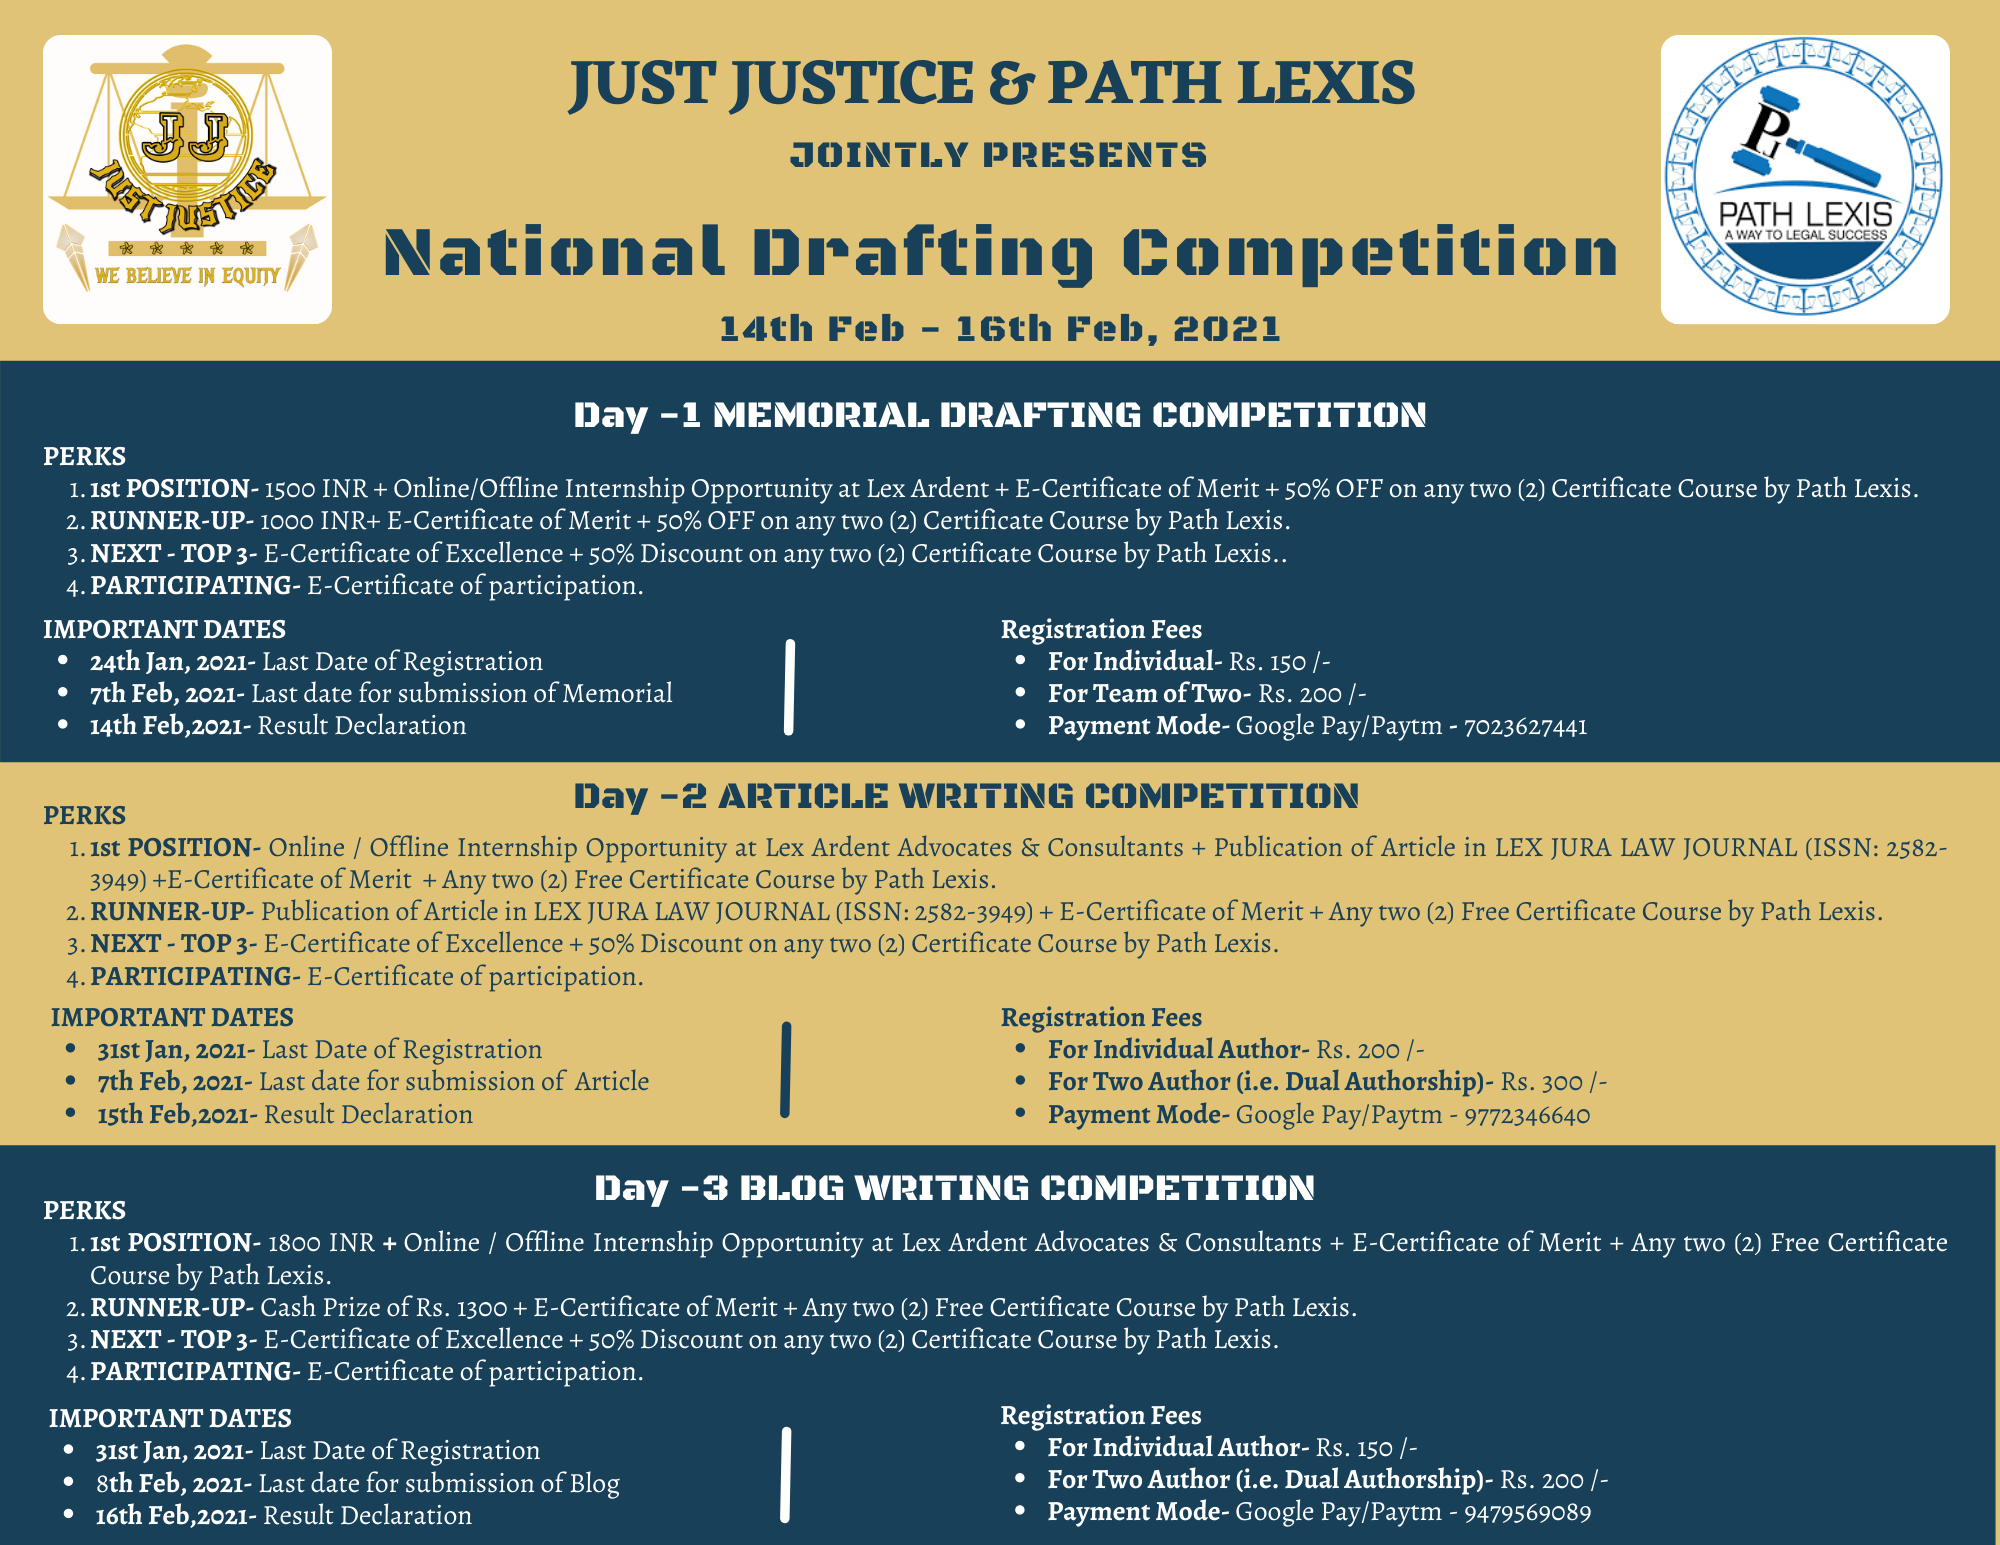 National Drafting Competition by Just Justice and Path Lexis